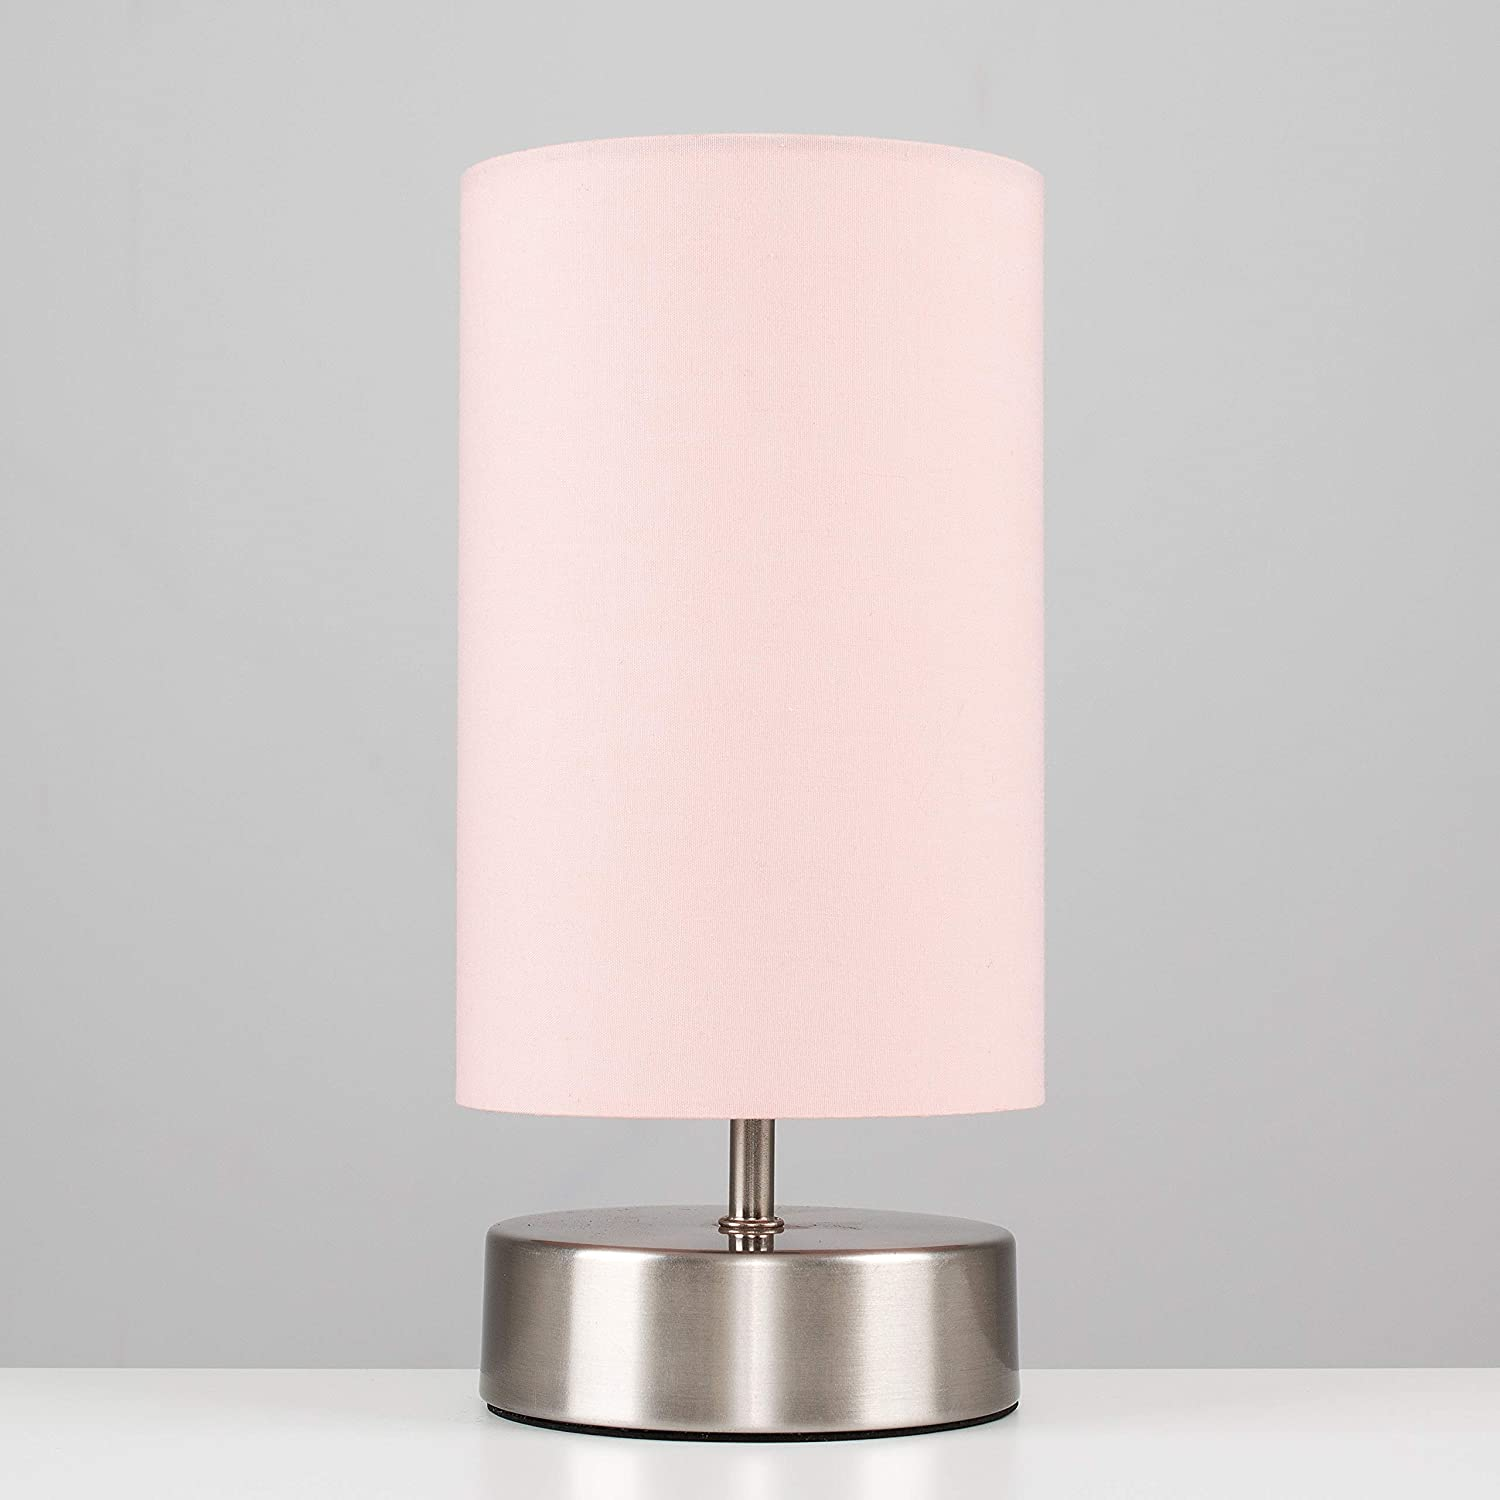 Pair of Modern Chrome Touch Dimmer Bedside Table Lamps with Pink Cylinder Light Shades